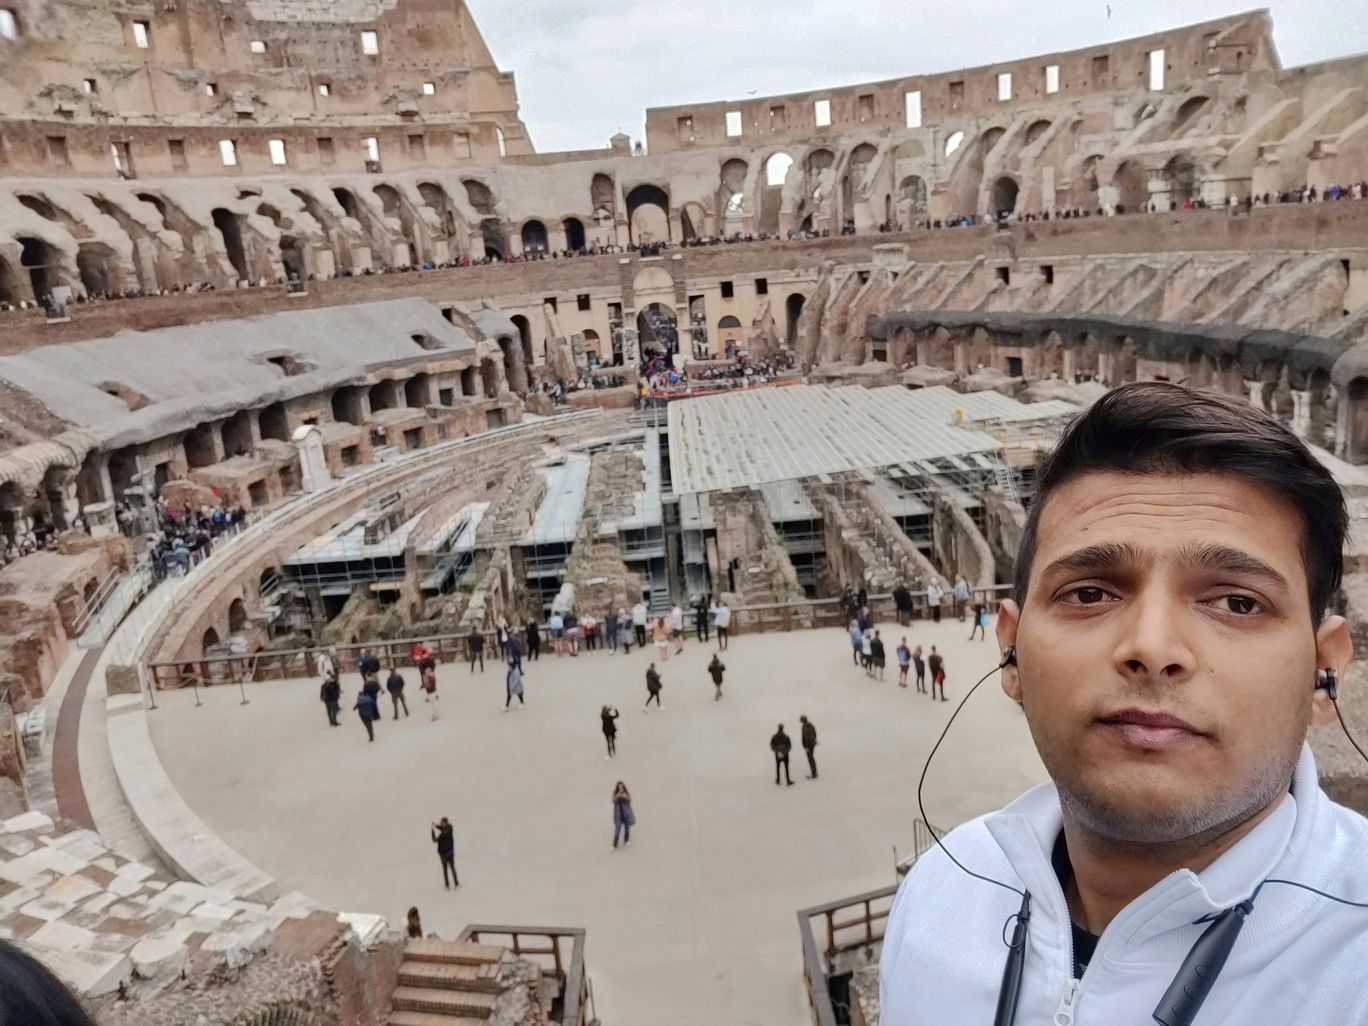 Photo of Colosseum By Deepanjan Das